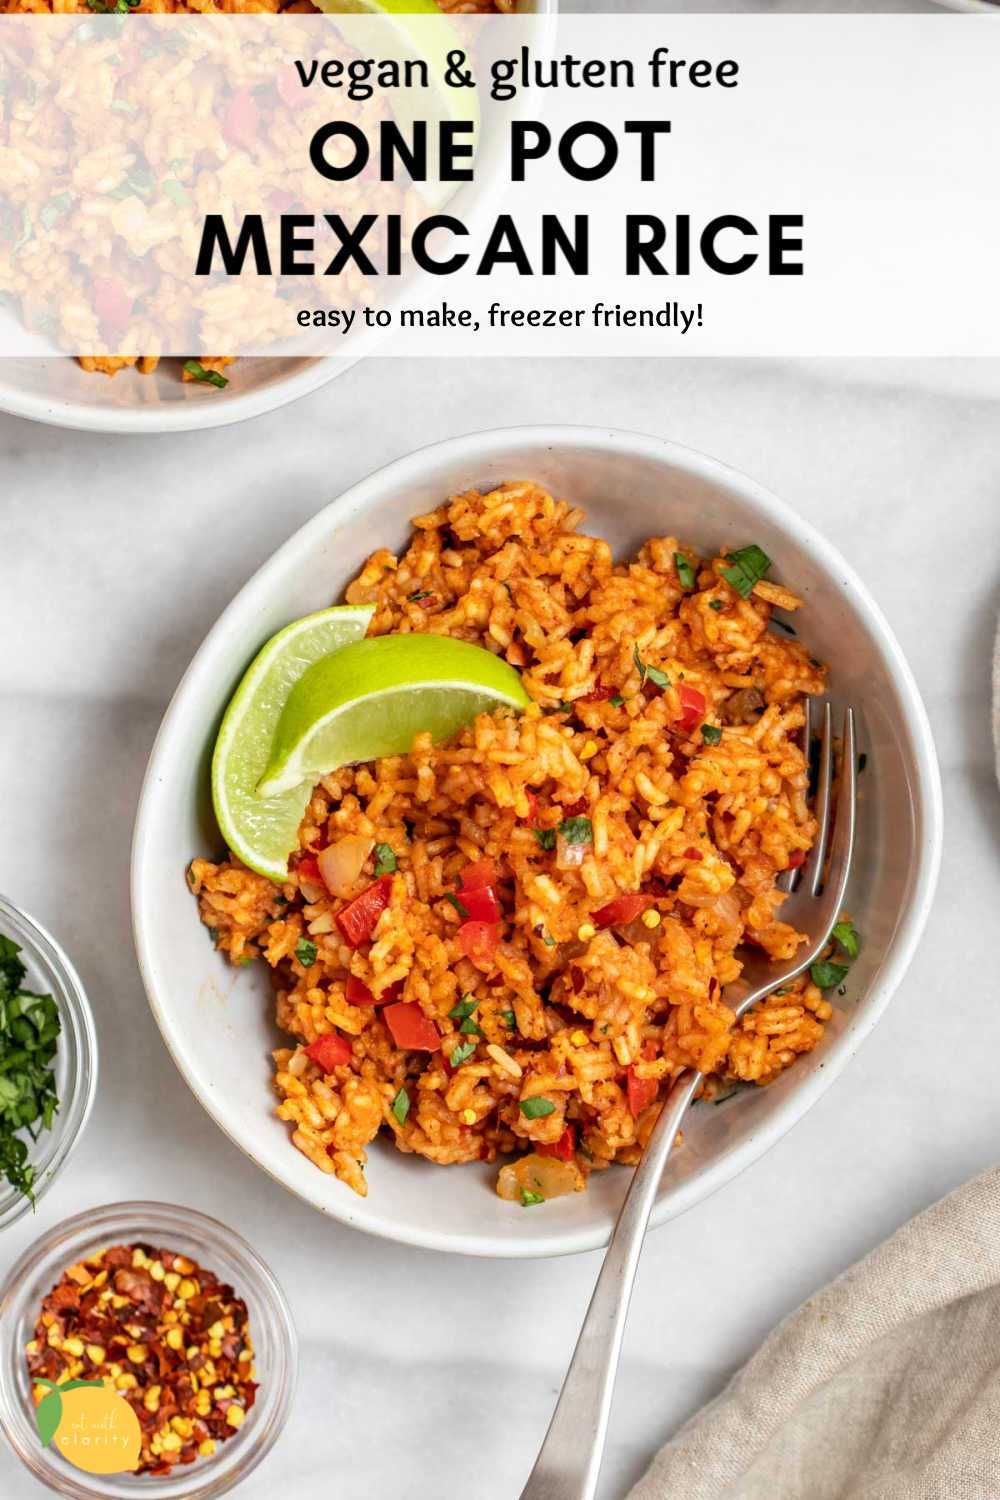 Vegan Bowls Vegan Recipes On Instagram Mexican Rice By Alexafuelednaturally Who D Love To Try Some Vegetarian Chicken Vegan Mexican Mexican Rice